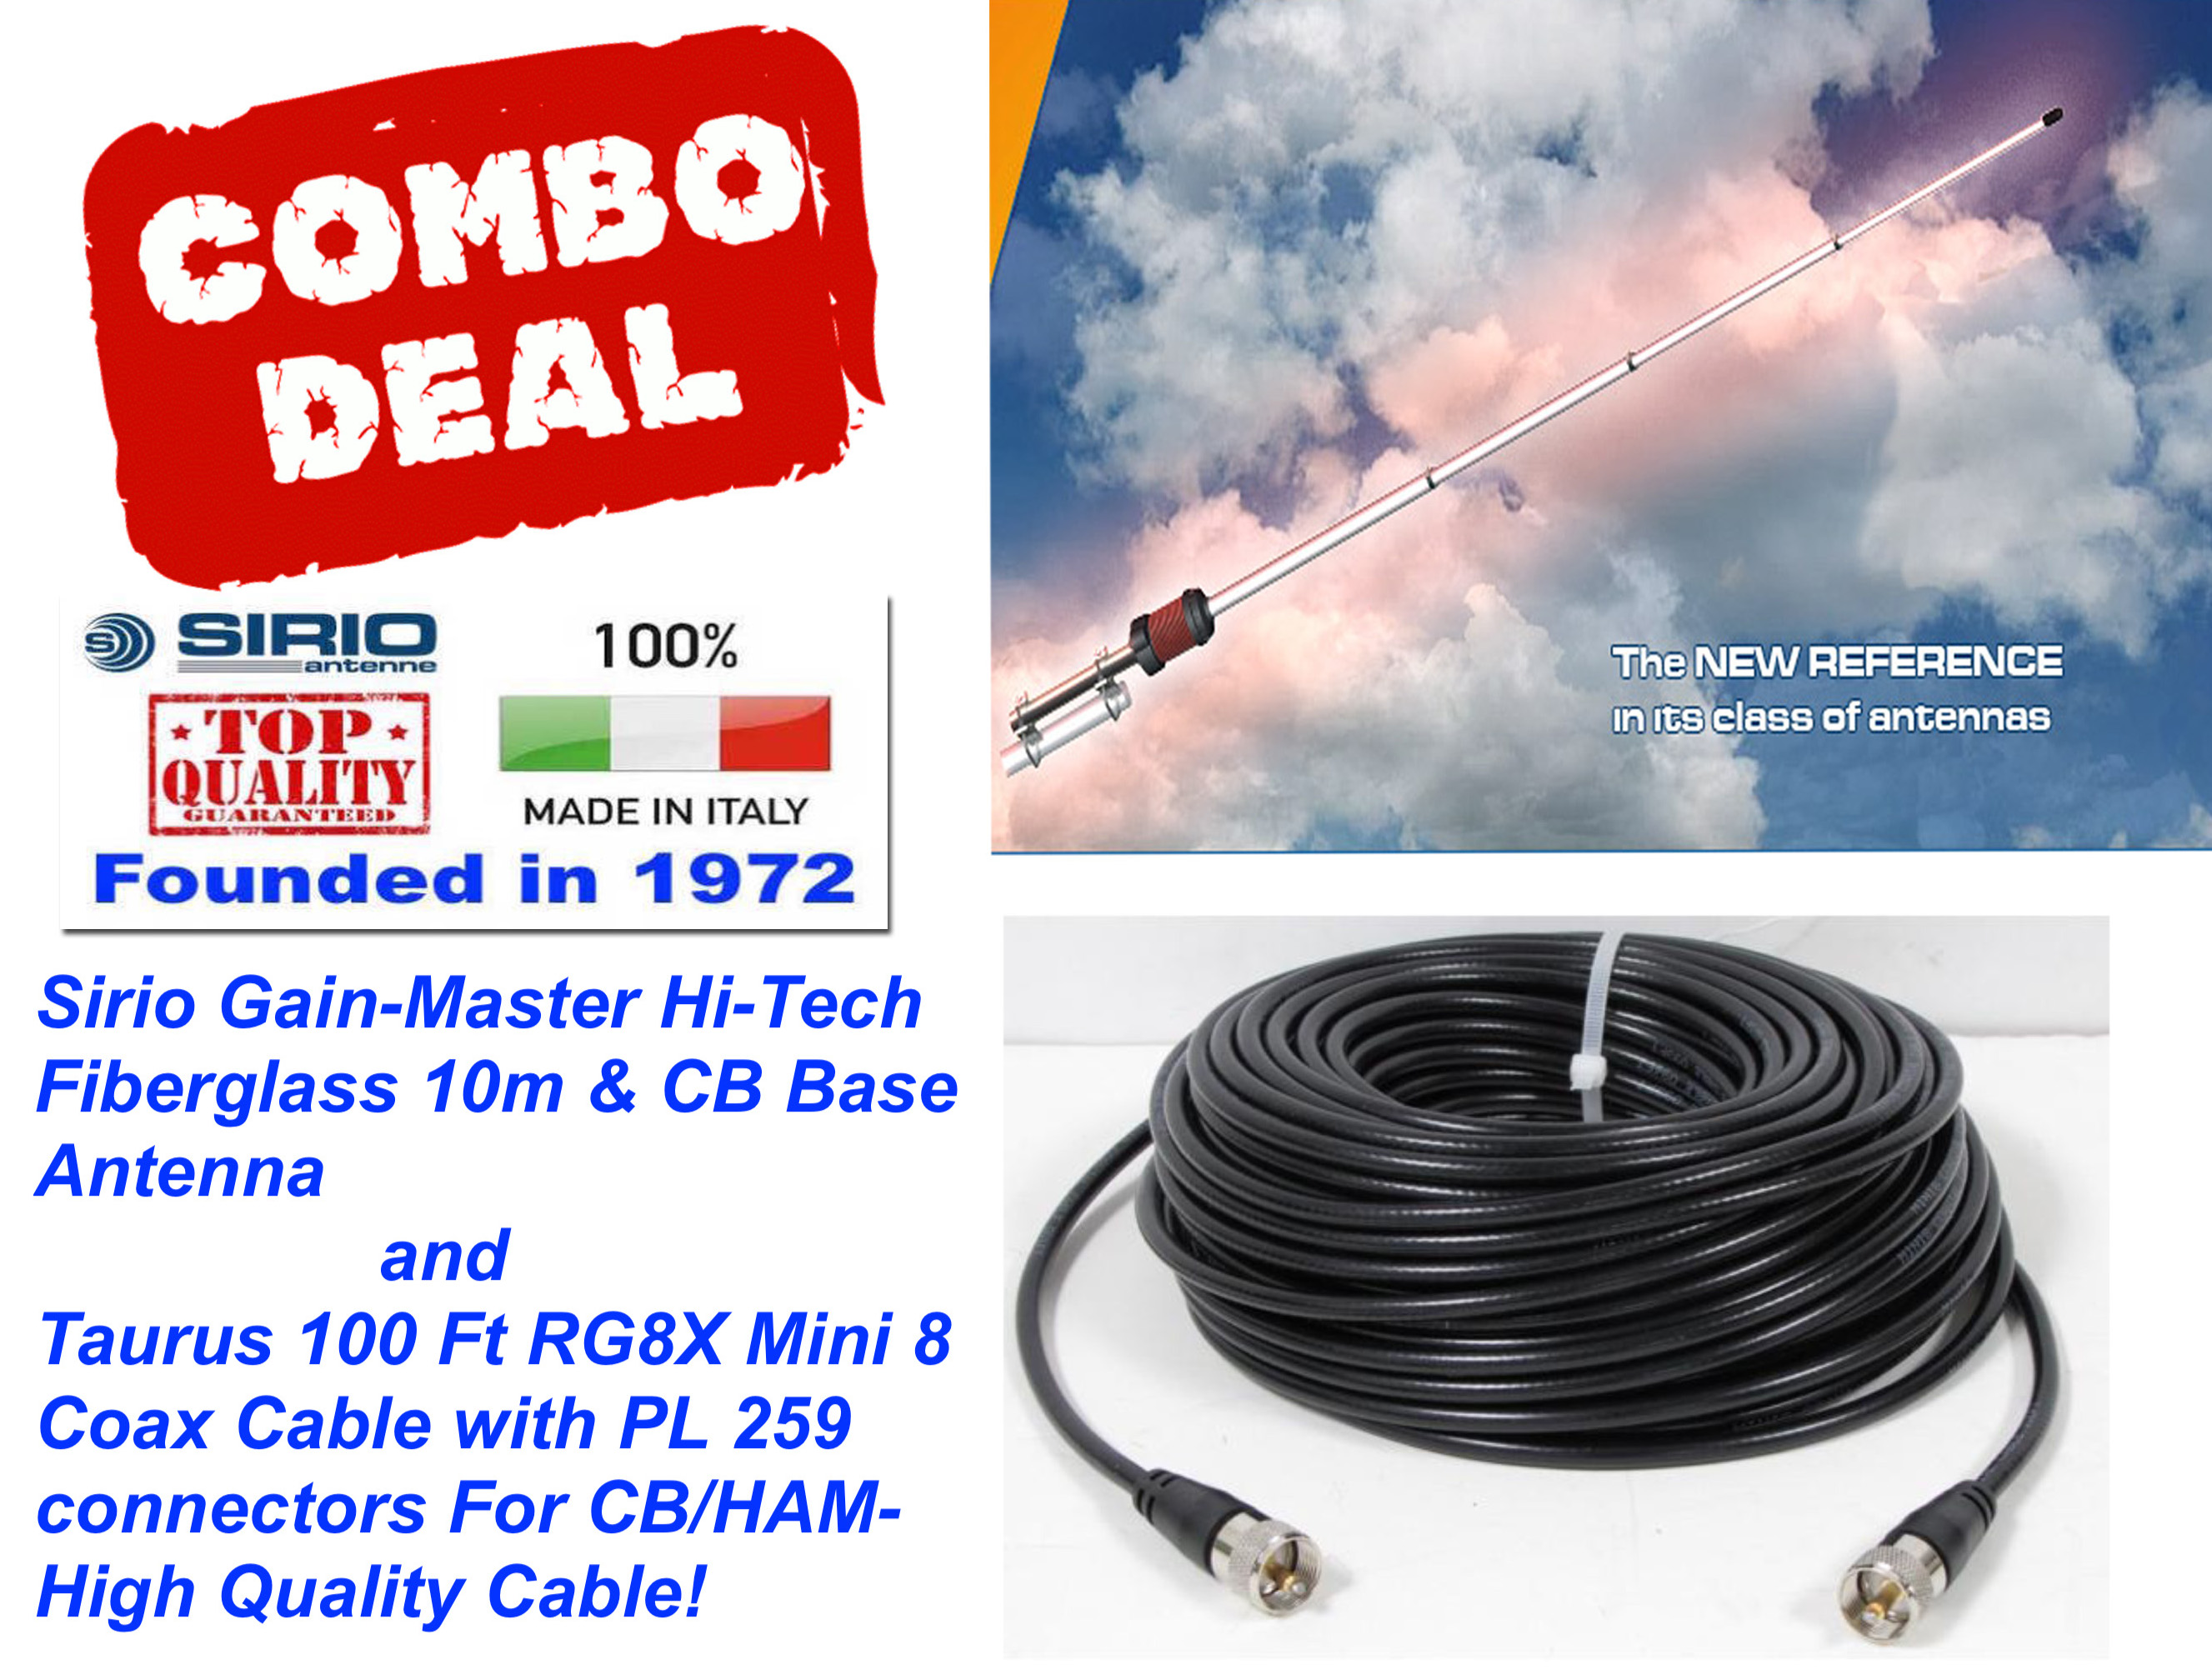 Sirio Gain-Master 5/8 Wave 25.5-30Mhz Base Antenna + 100 Ft Coax